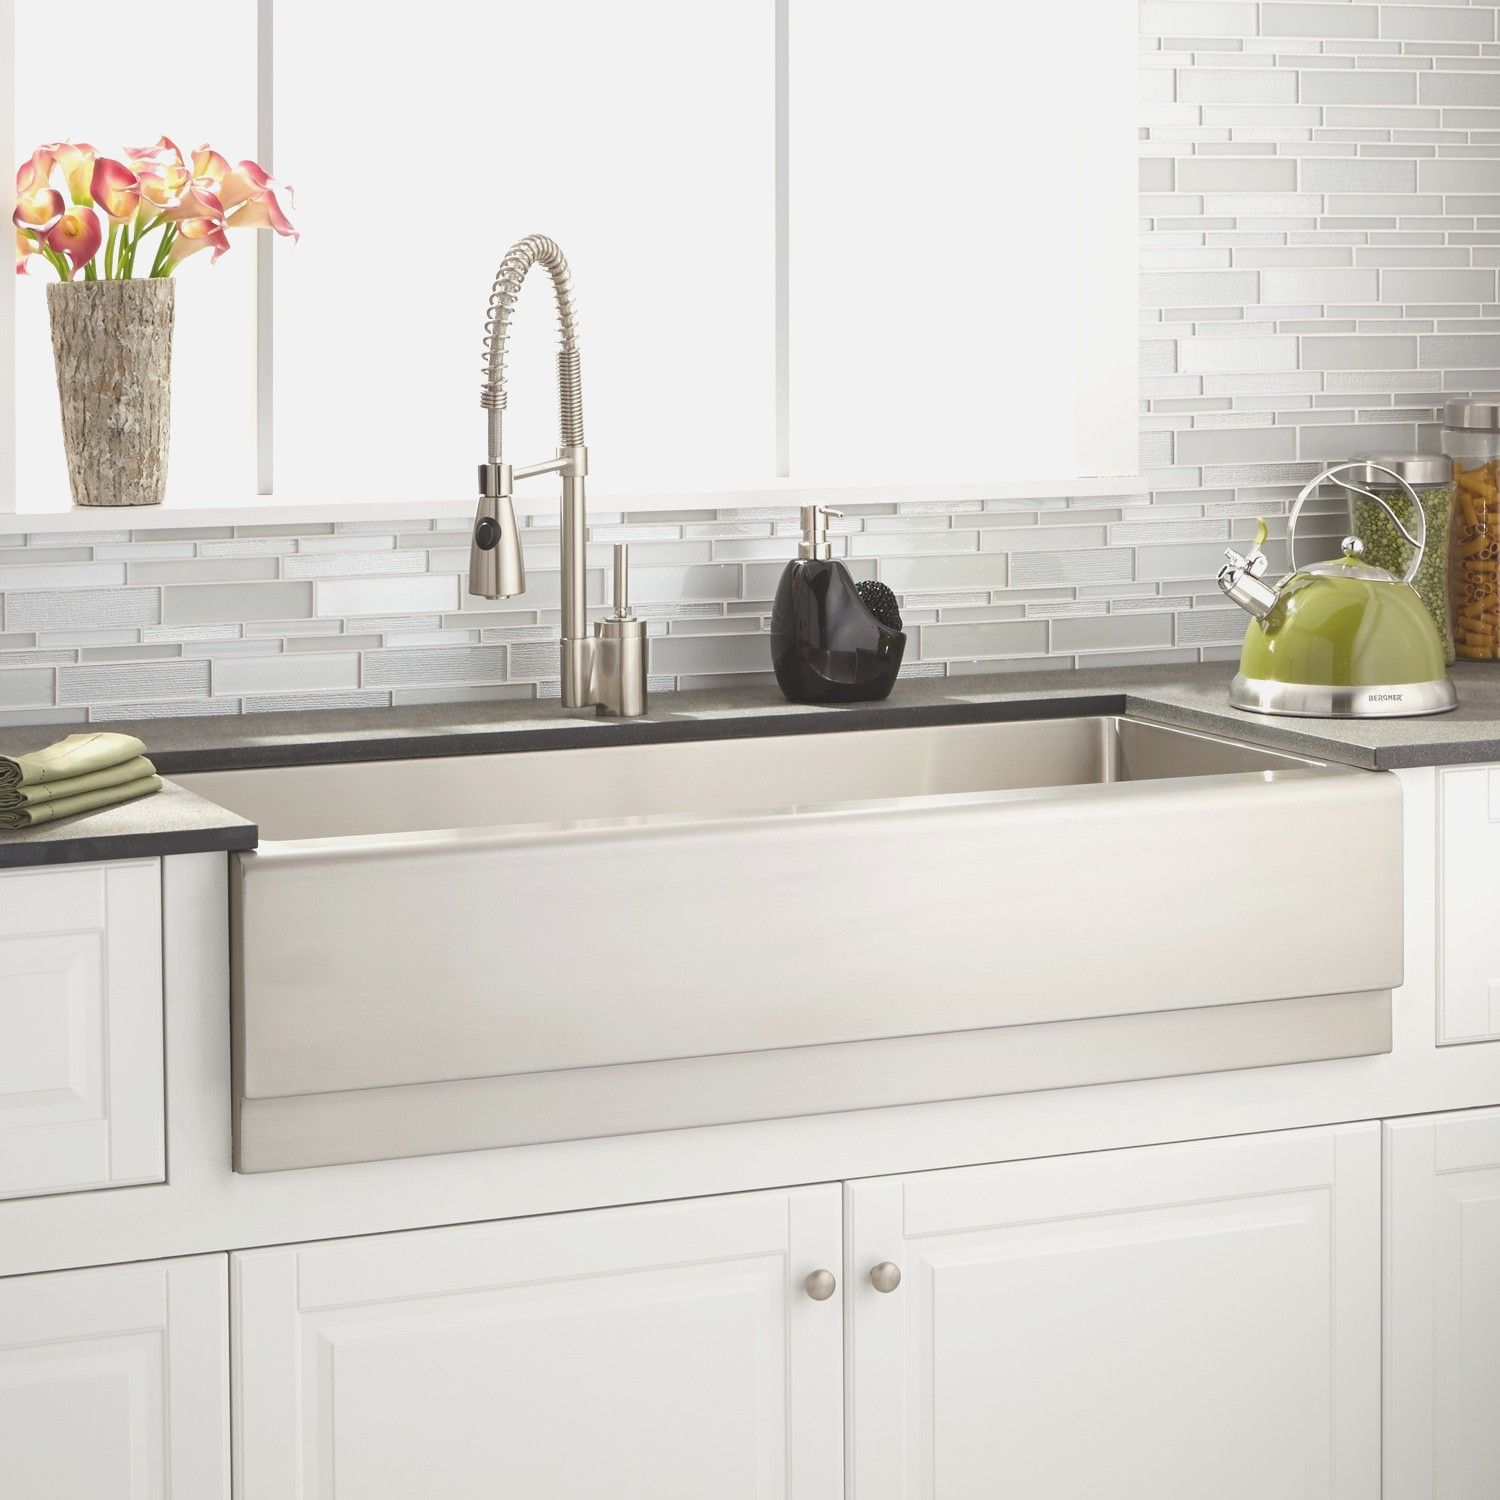 Stainless Steel Farmhouse Kitchen Sink   Farmhouse Stainless Steel  Undermount Kitchen Sink, Hammered Stainless Steel